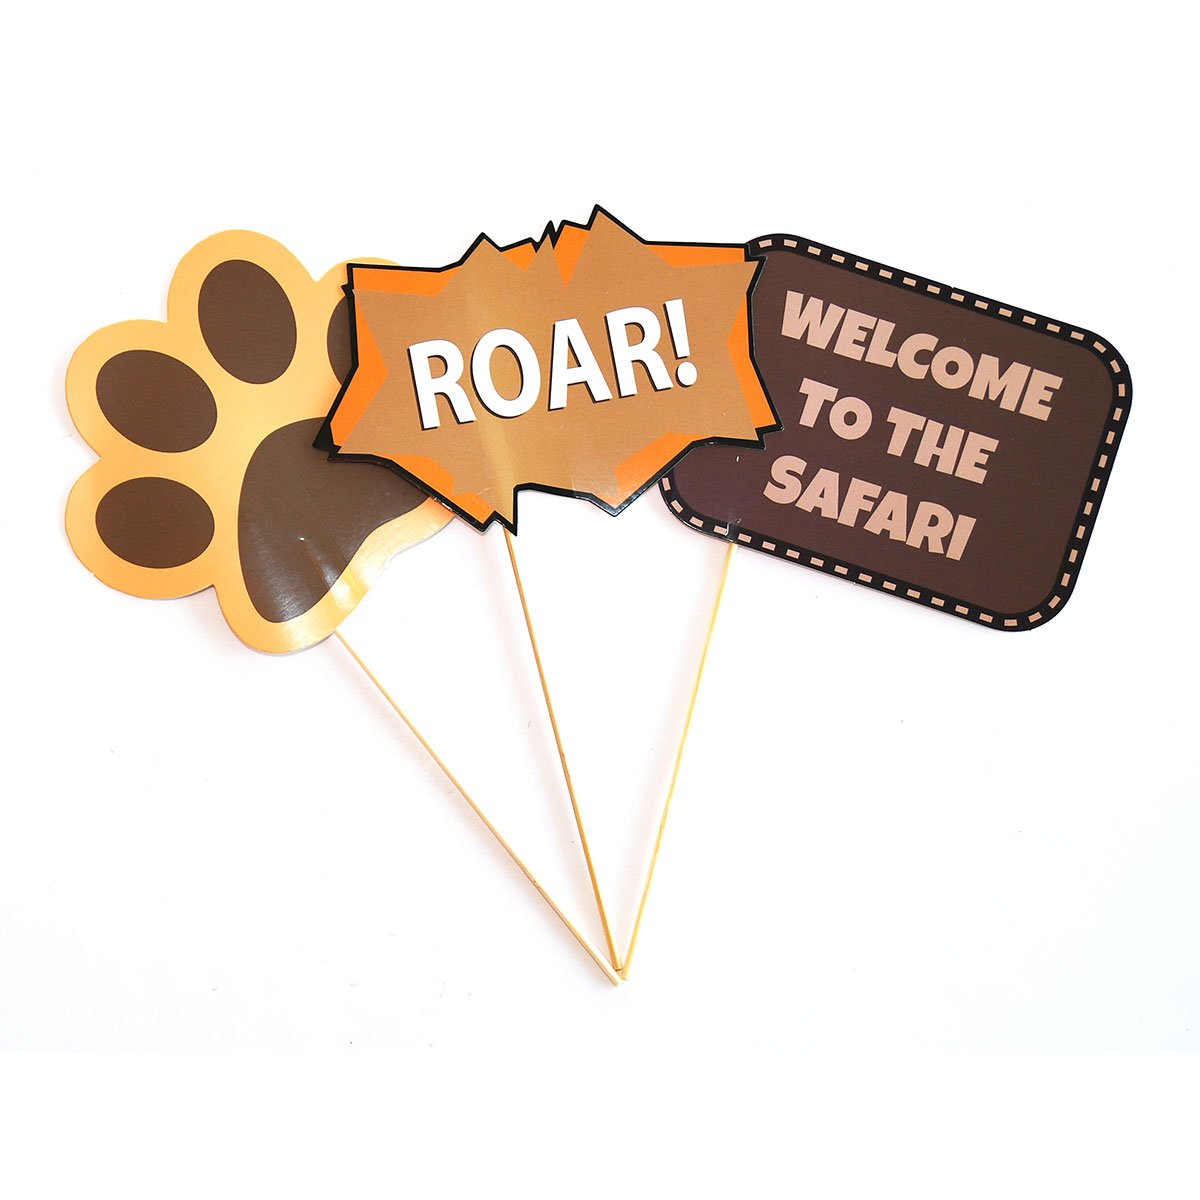 Blue Orchards Safari Photo Props (32 Pieces) for Photo Booths, Kids Birthdays, Jungle Themed Parties and More! Our Safari Photo Booth Party Favors are Pre-Made (Not DIY) for Your Convenience! by Blue Orchards (Image #3)